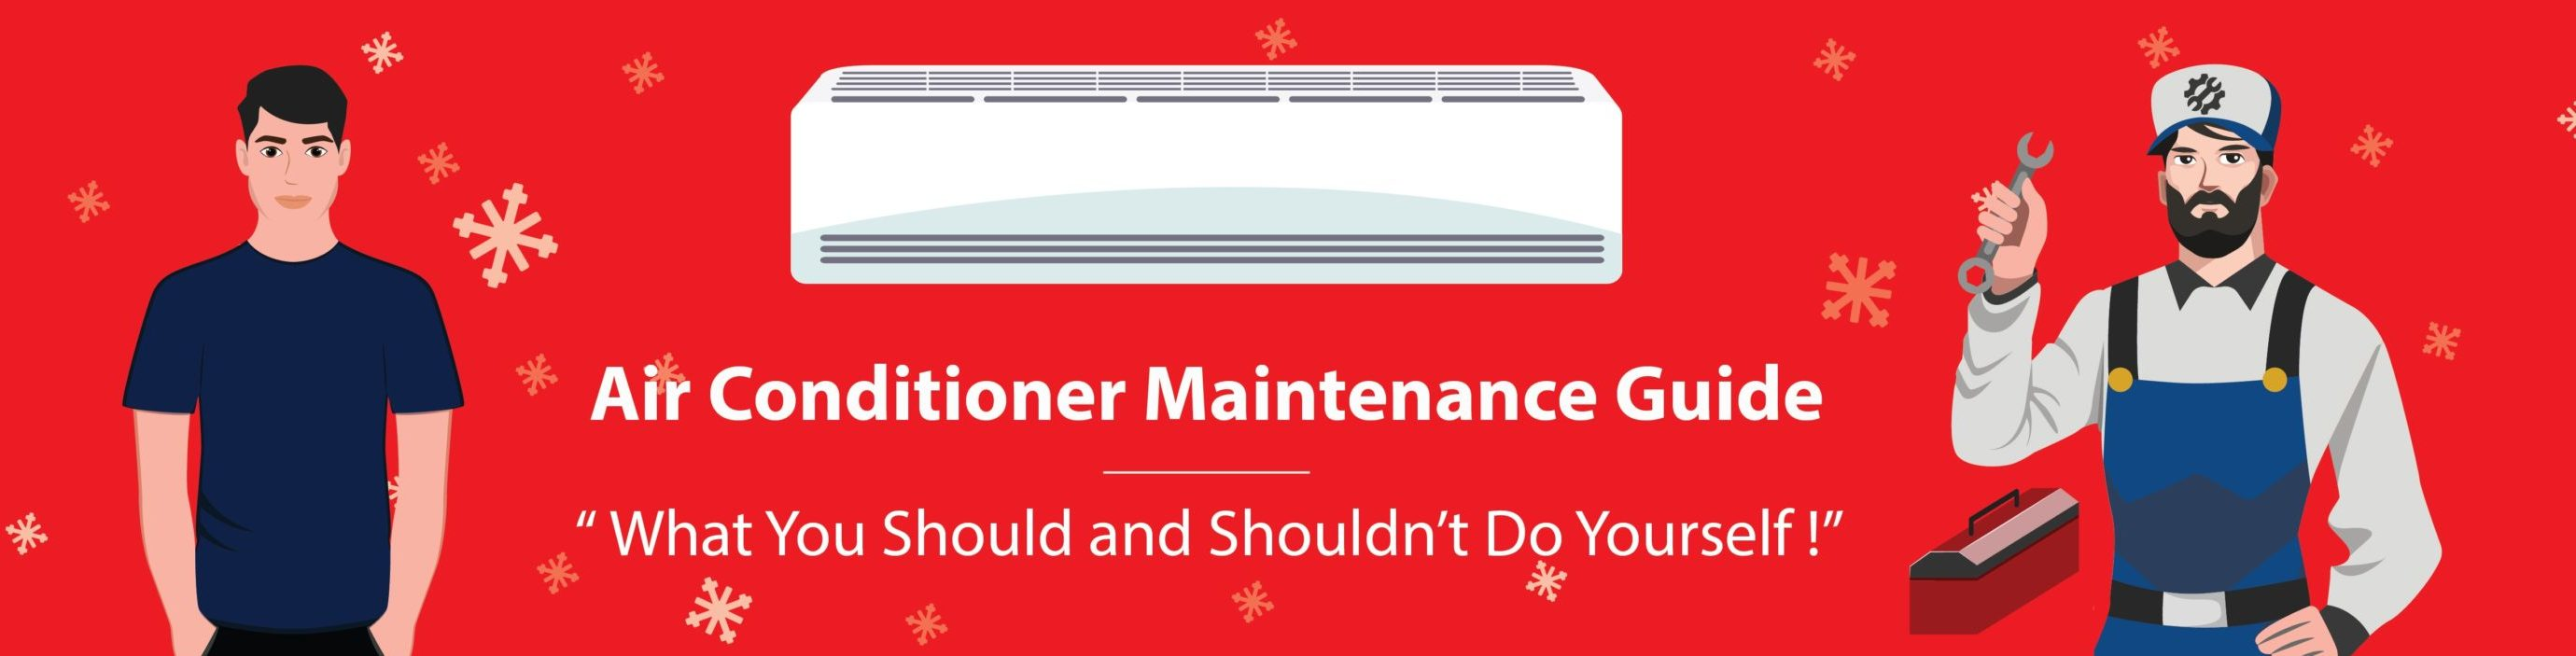 Air Conditioner Maintenance Ultimate Guide For Home Owners - Feature Image